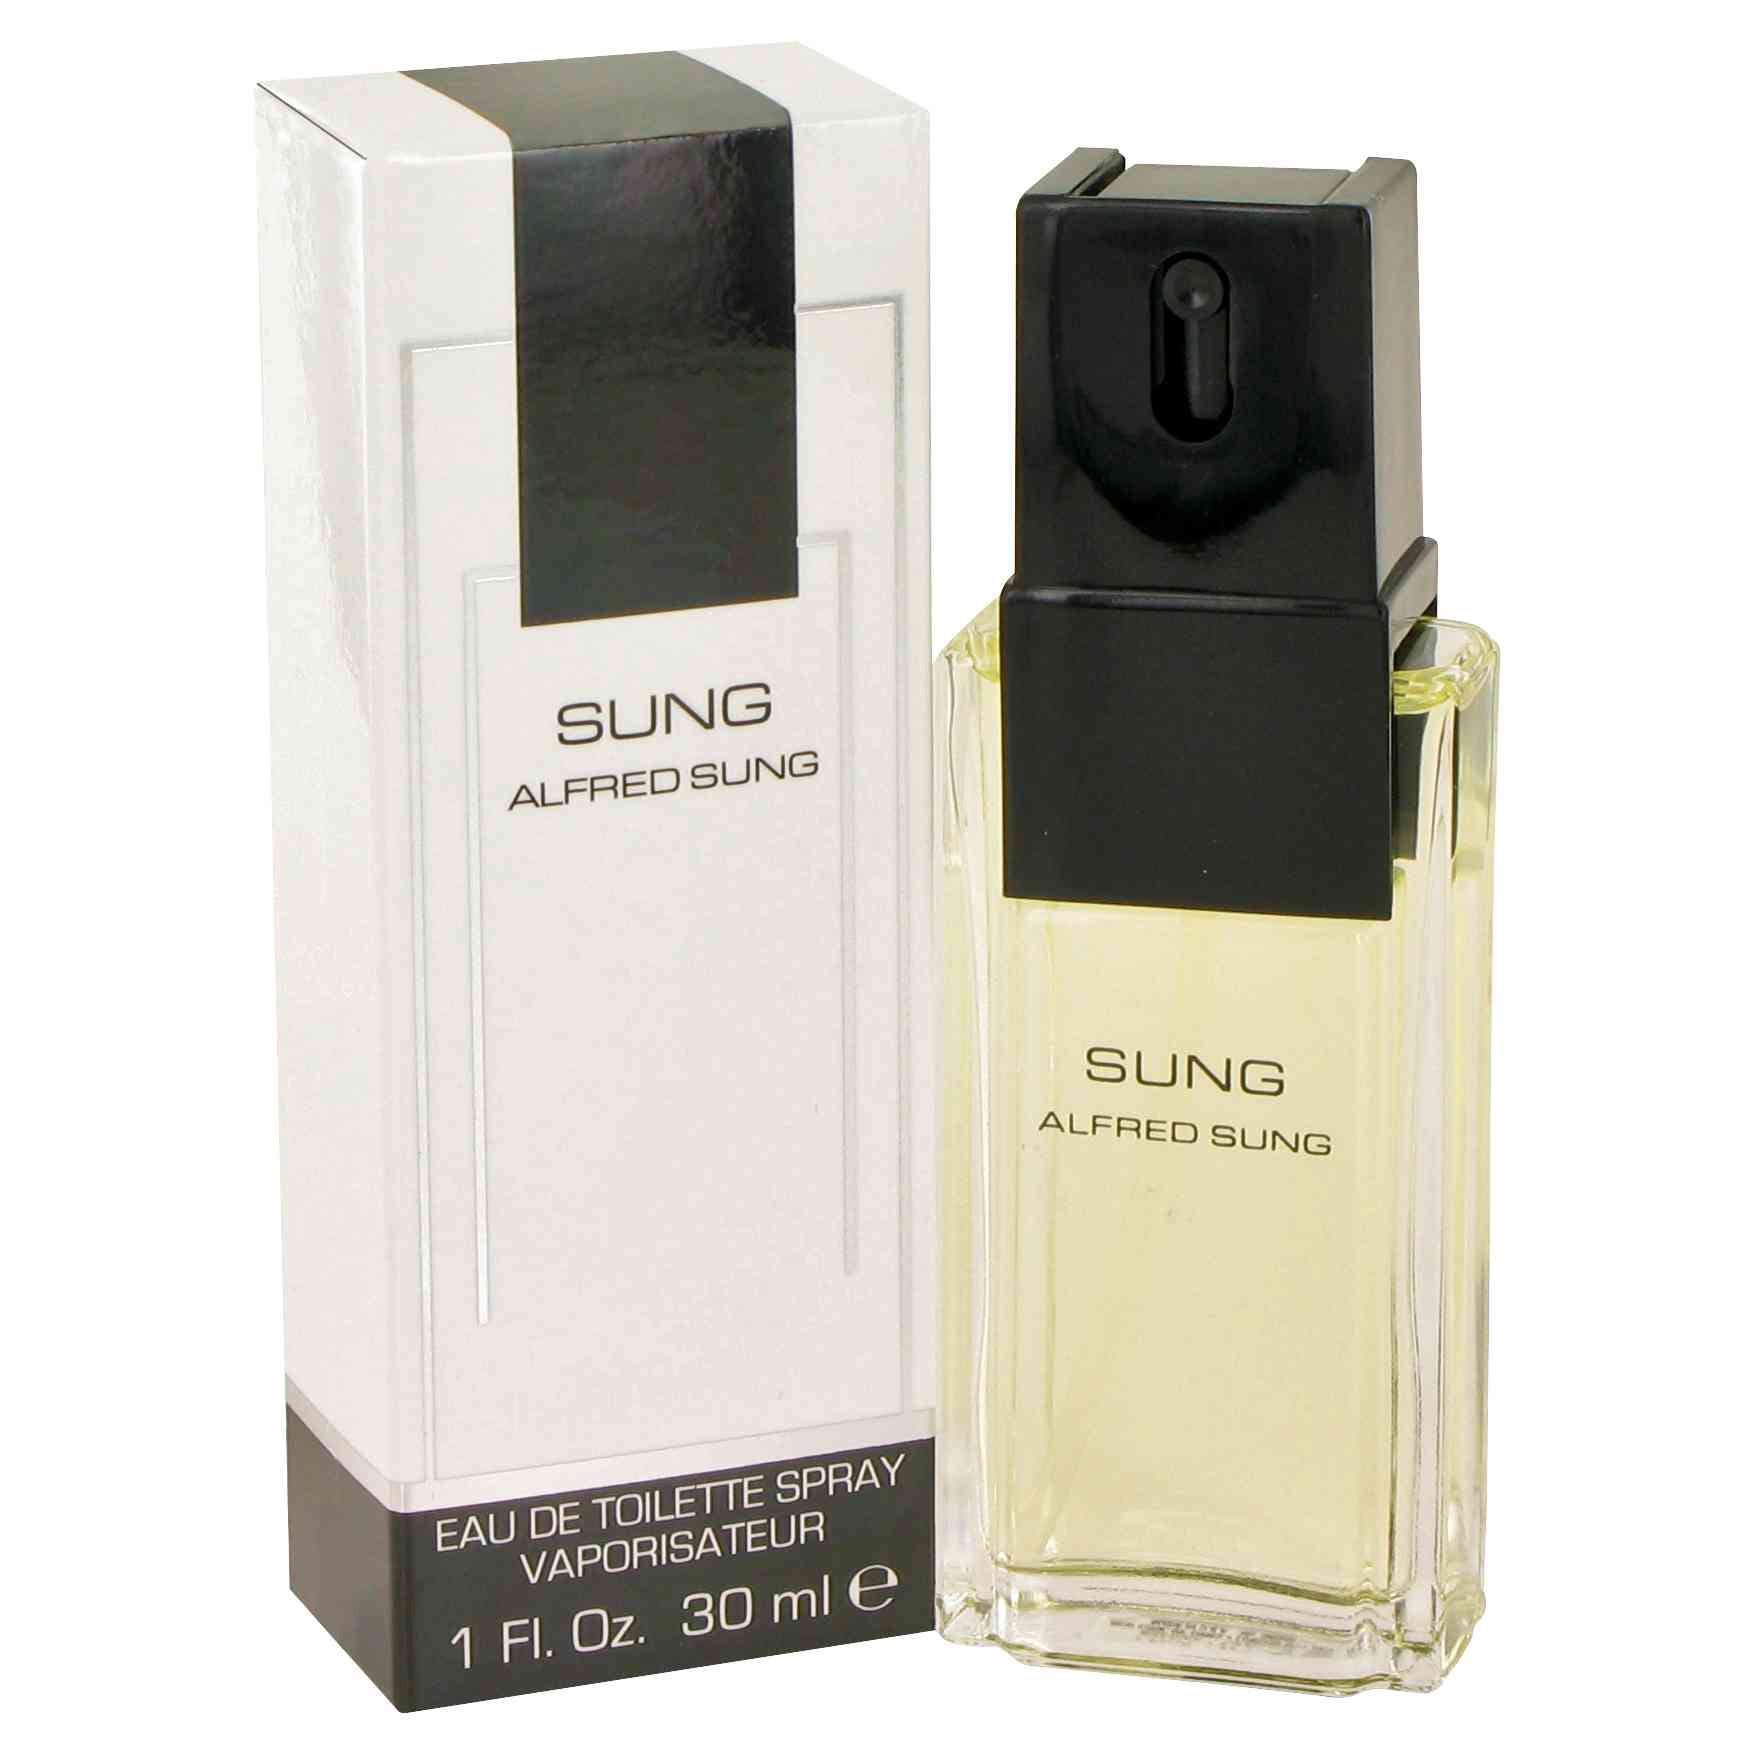 Sung by Alfred Sung Women's 1.7-ounce Eau de Toilette Spr...